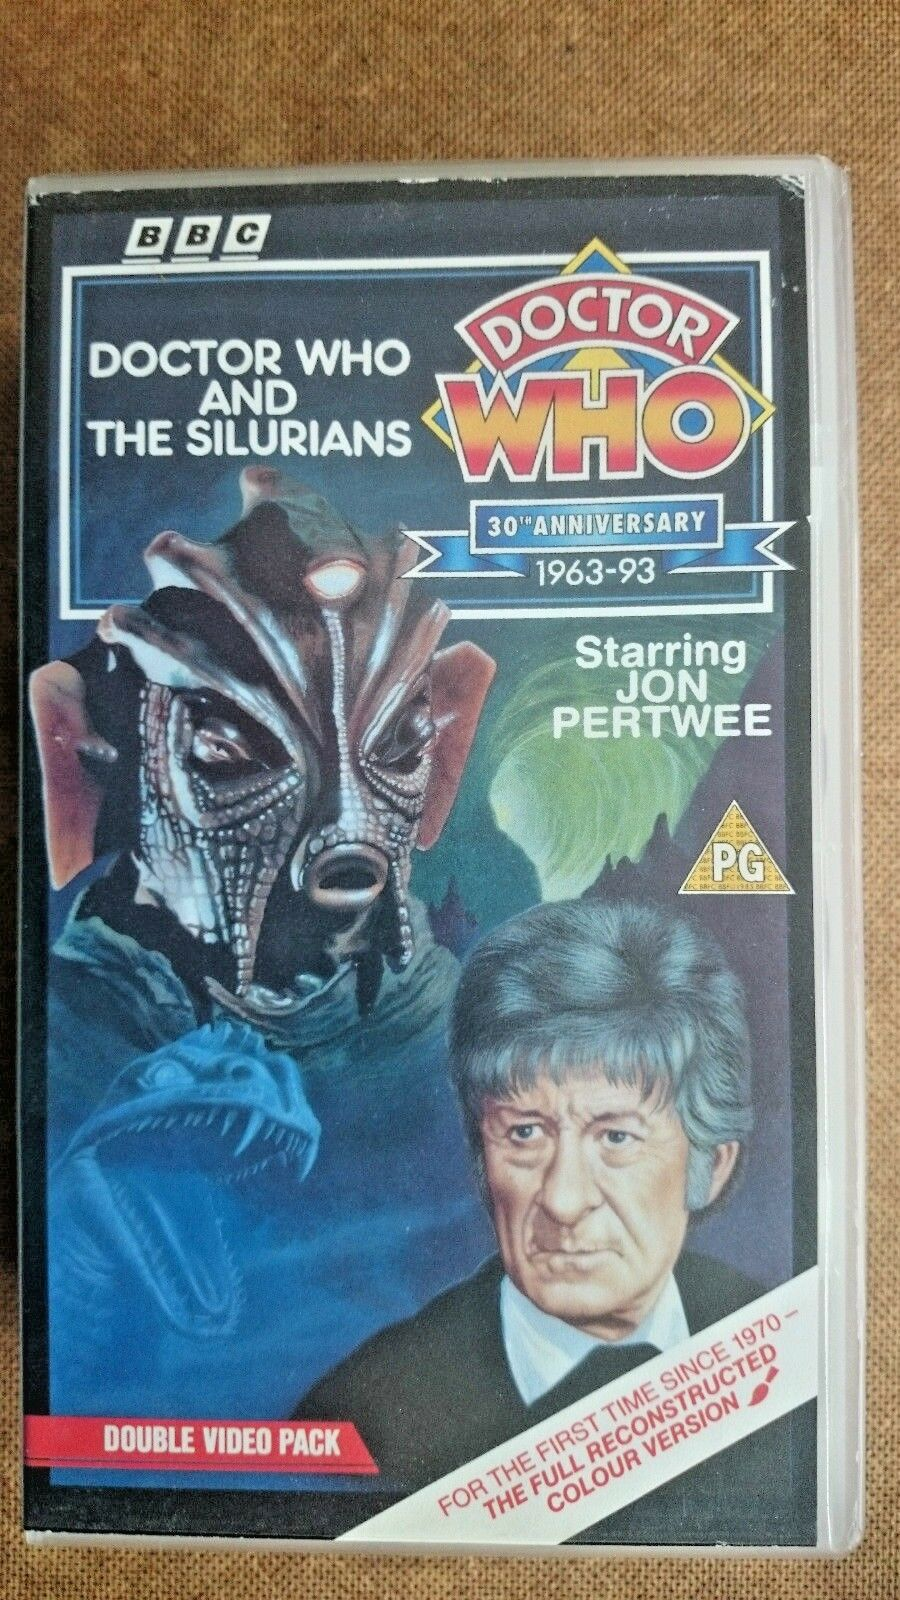 Doctor Who - Doctor Who And The Silurians (VHS/H, 1993) - Jon Pertwee